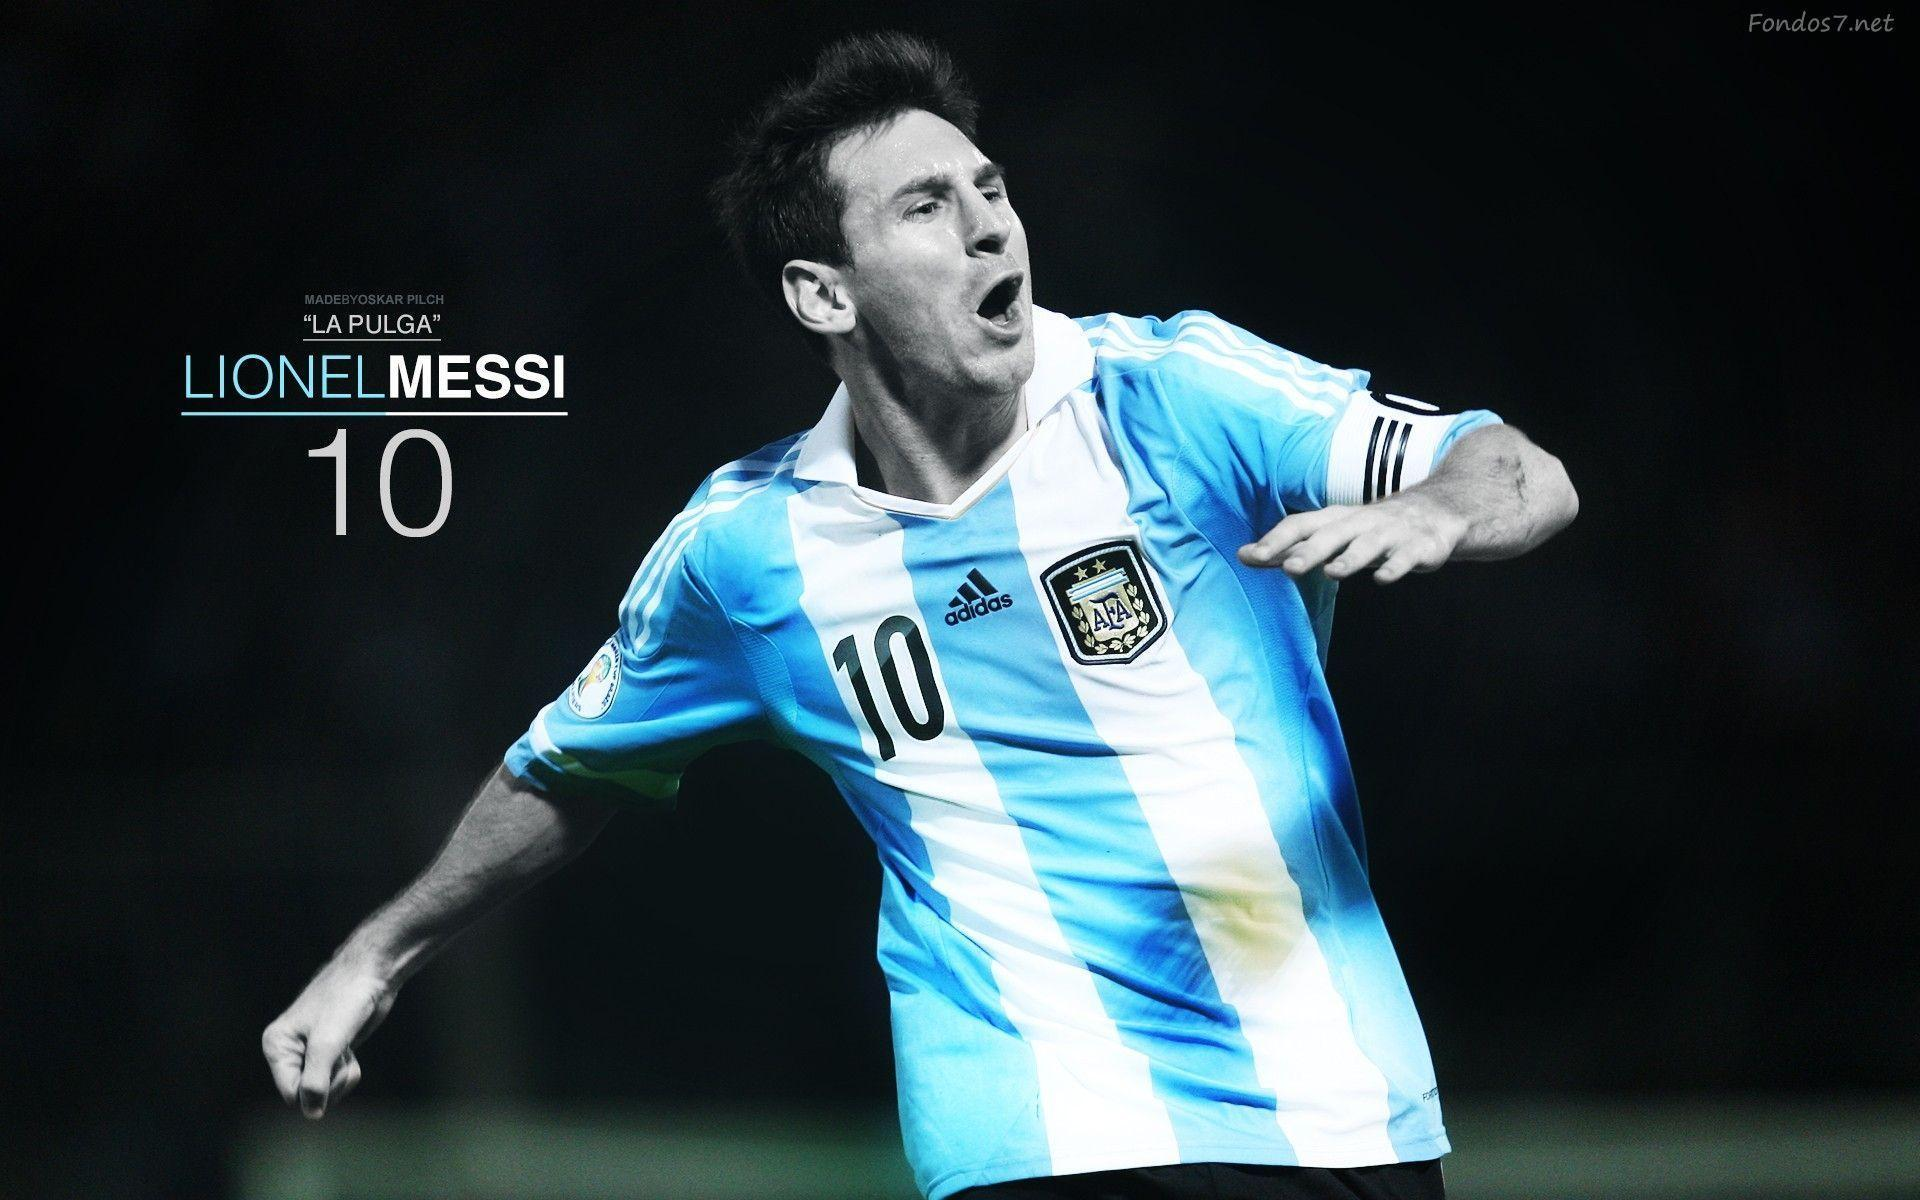 Messi Wallpapers - Full HD wallpaper search